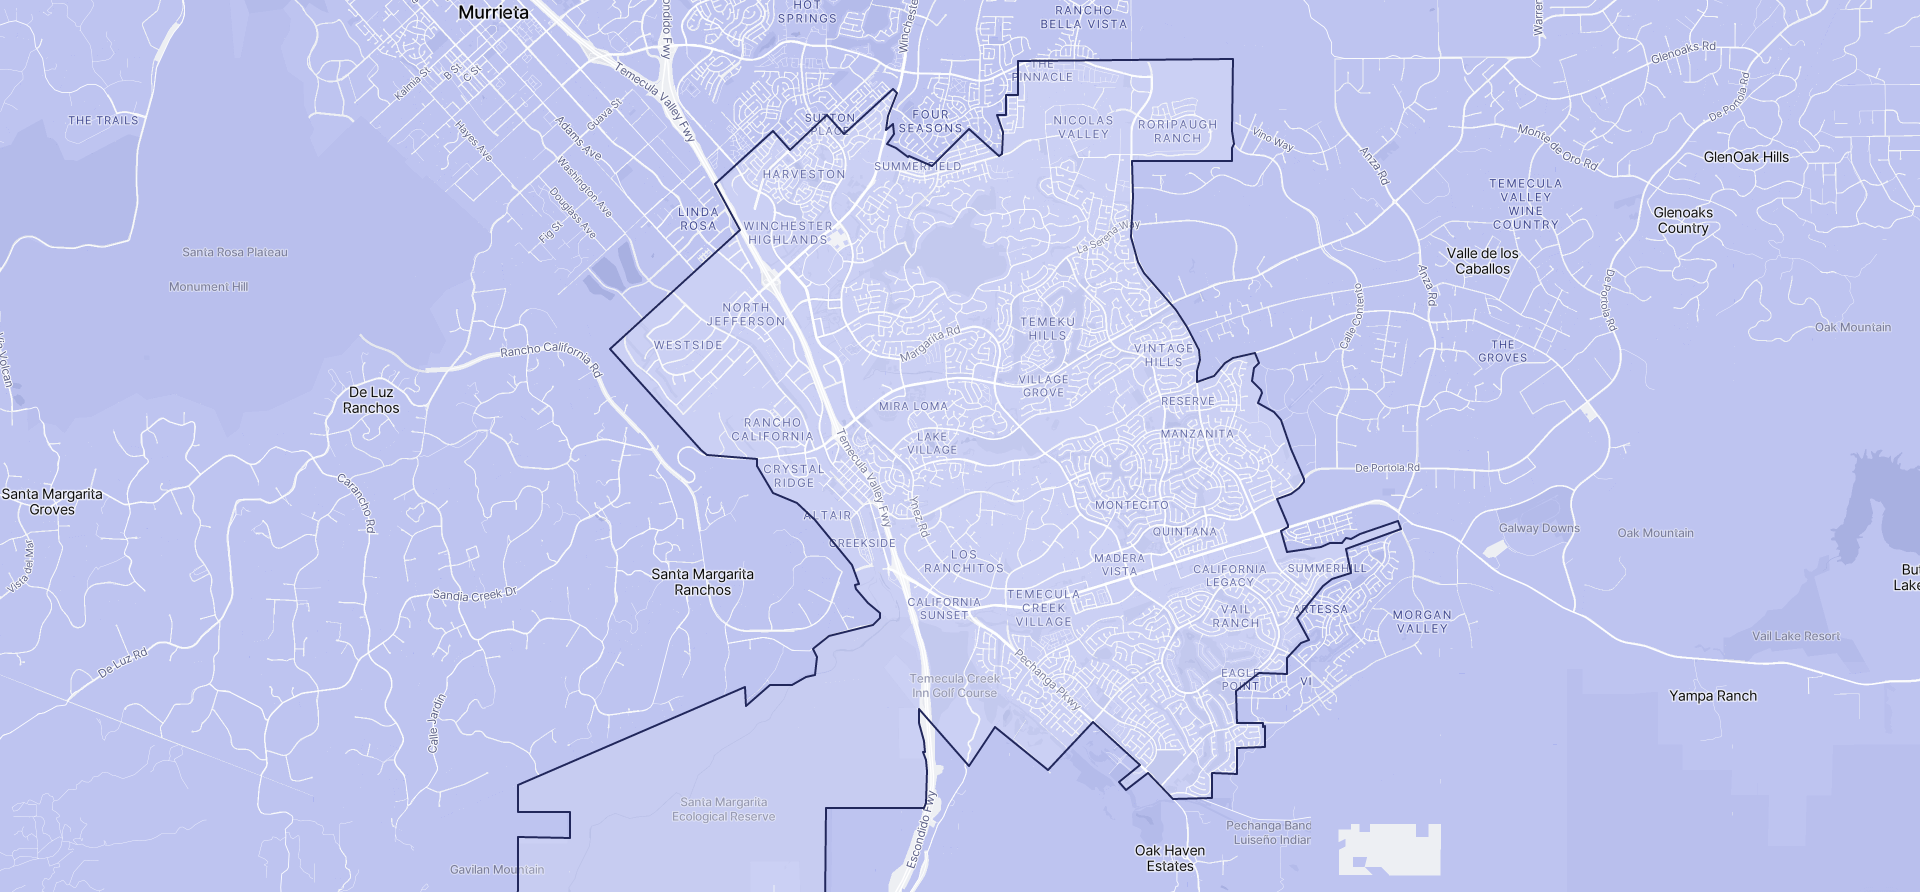 Image of Temecula boundaries on a map.